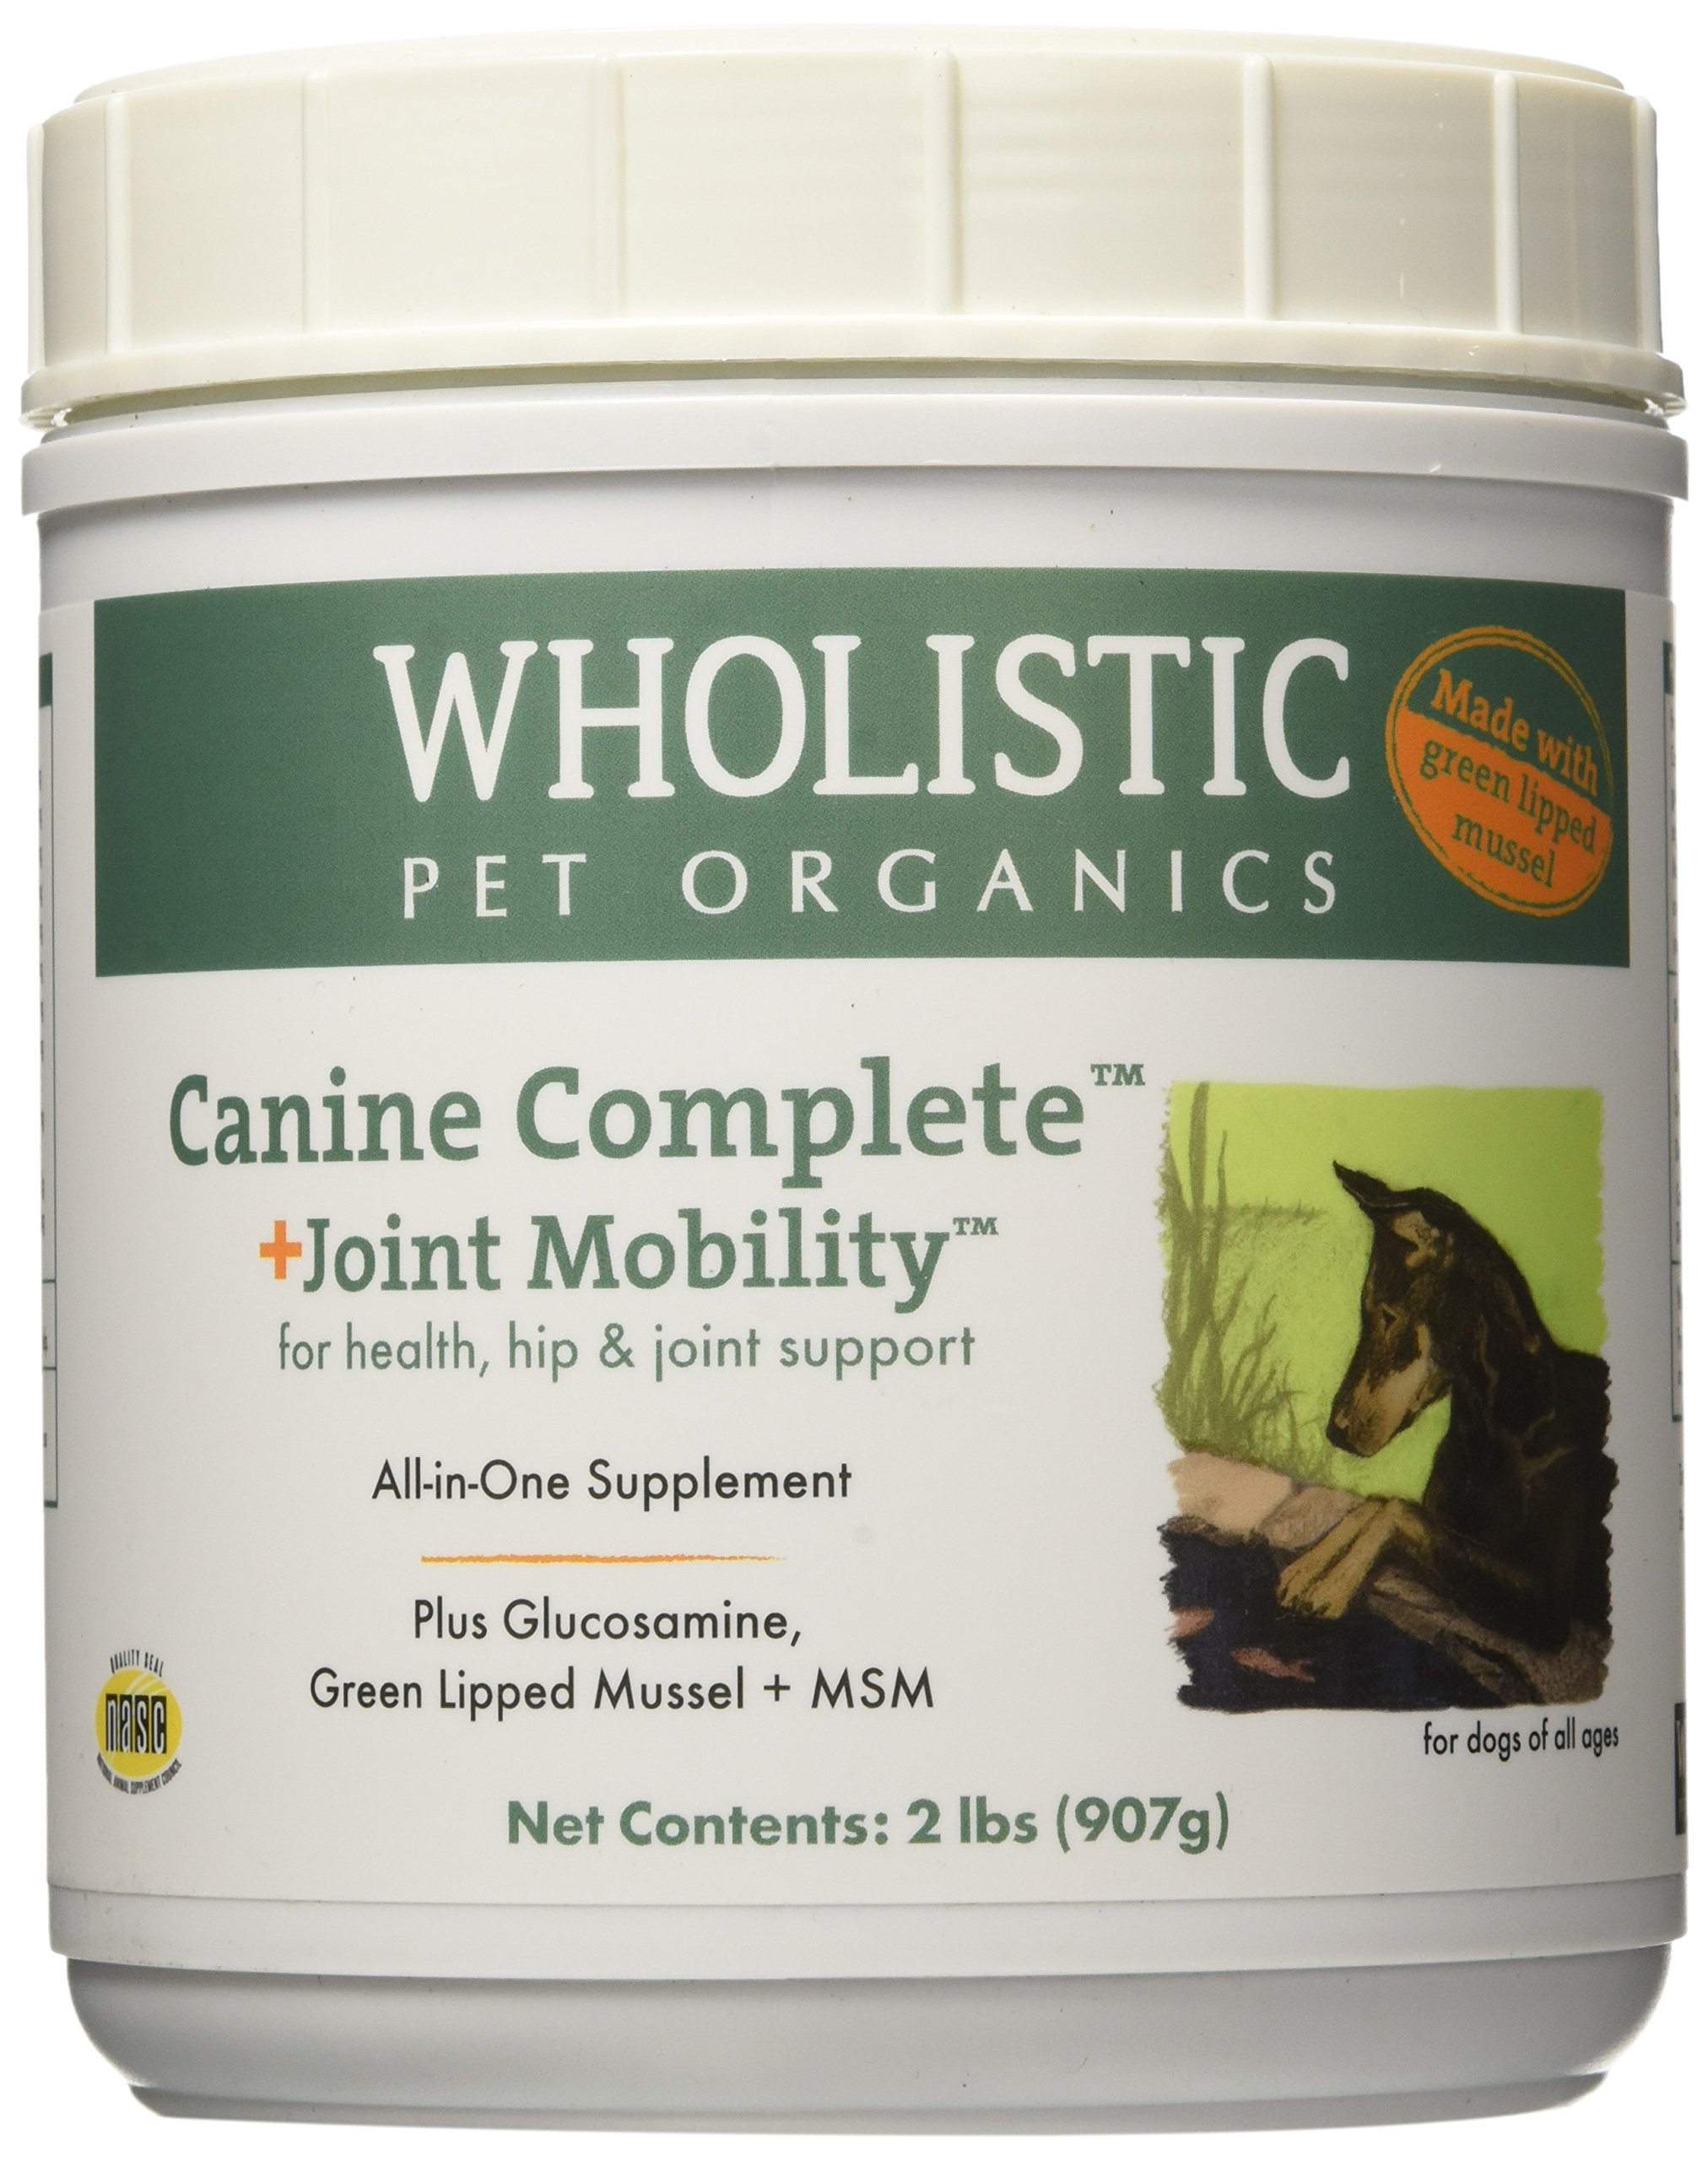 Wholistic Pet Organics Canine Complete Plus Joint Mobility with Green Lipped Mussel Supplement, 2 lb by Wholistic Pet Organics